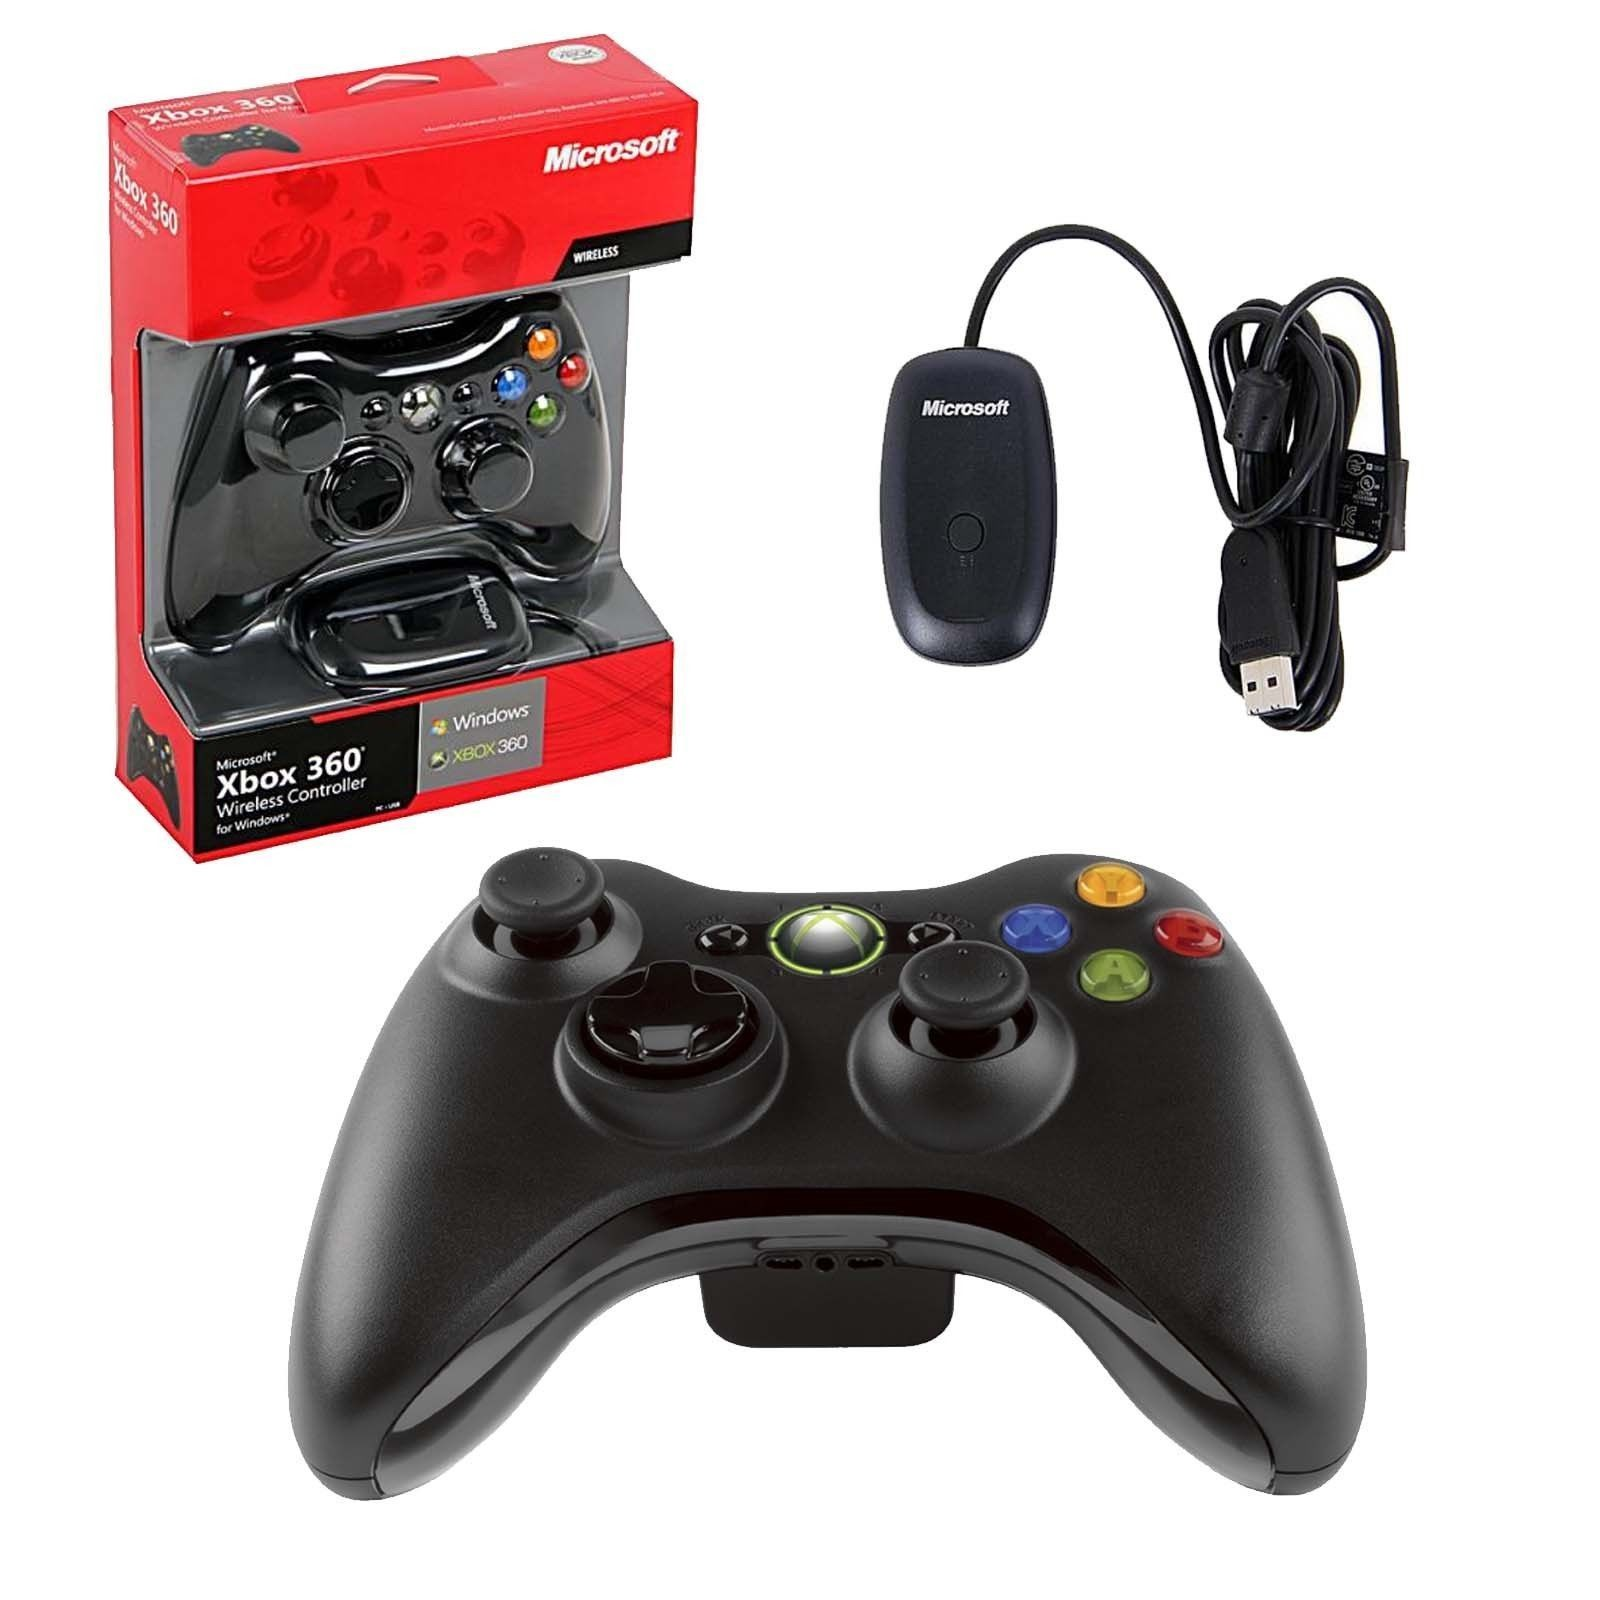 Tay Game Xbox 360 Wireless Controller for Windows